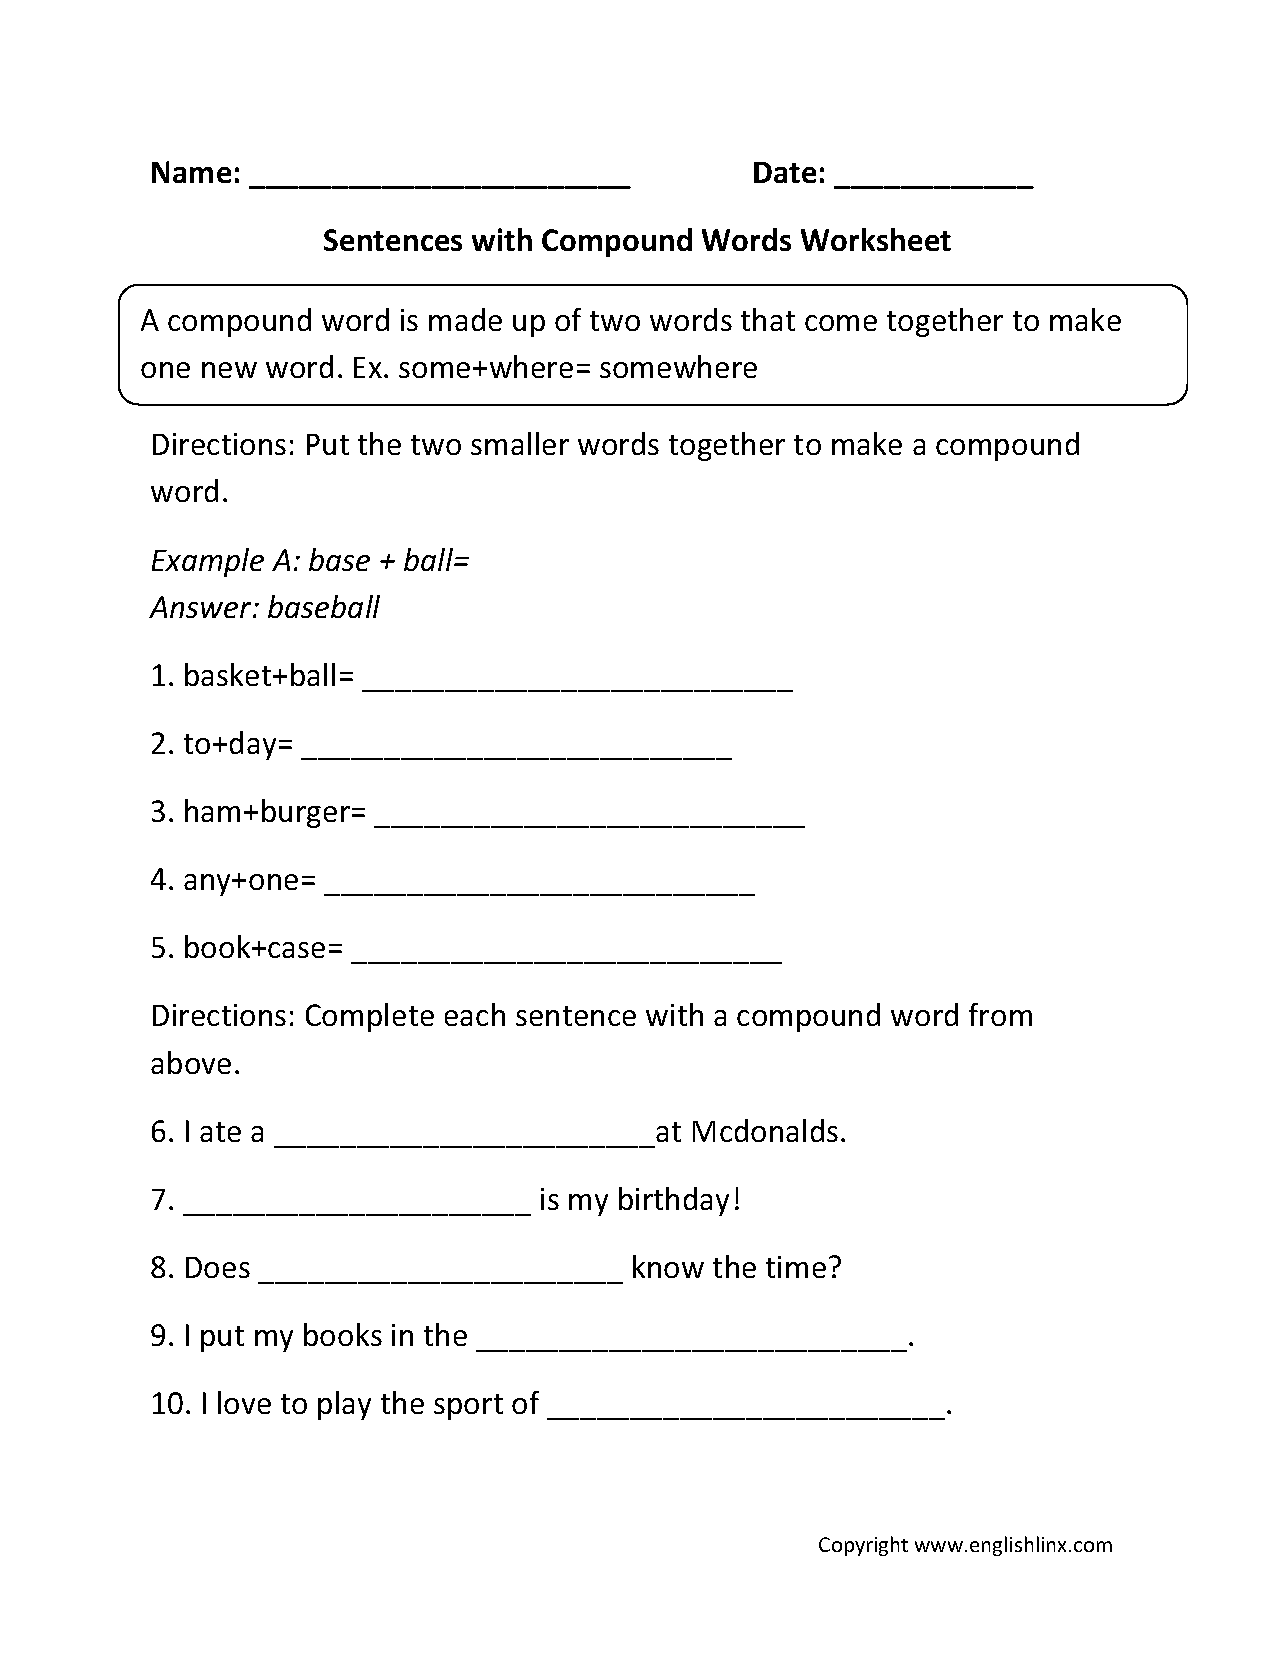 Worksheets Compound Words Worksheets englishlinx com compound words worksheets sentences with worksheets